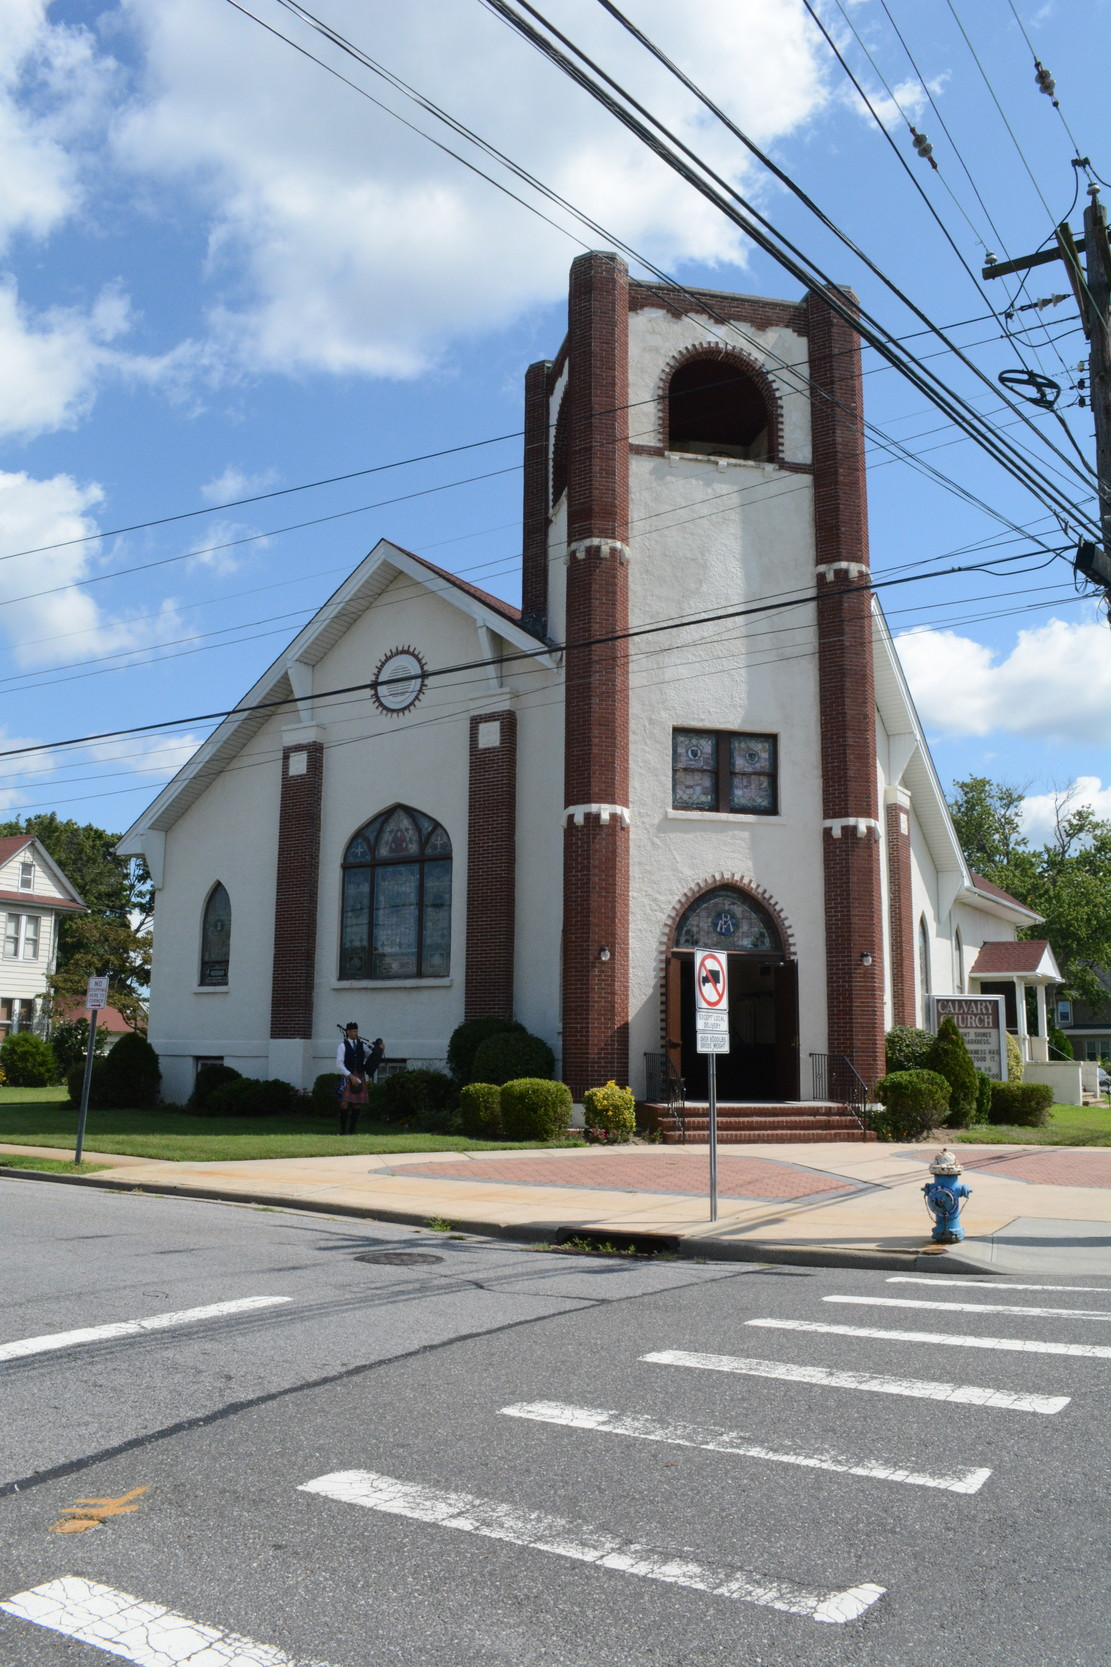 A funeral was held for Ankner at Calvary Protestant Church in Baldwin, where she was a congregant.